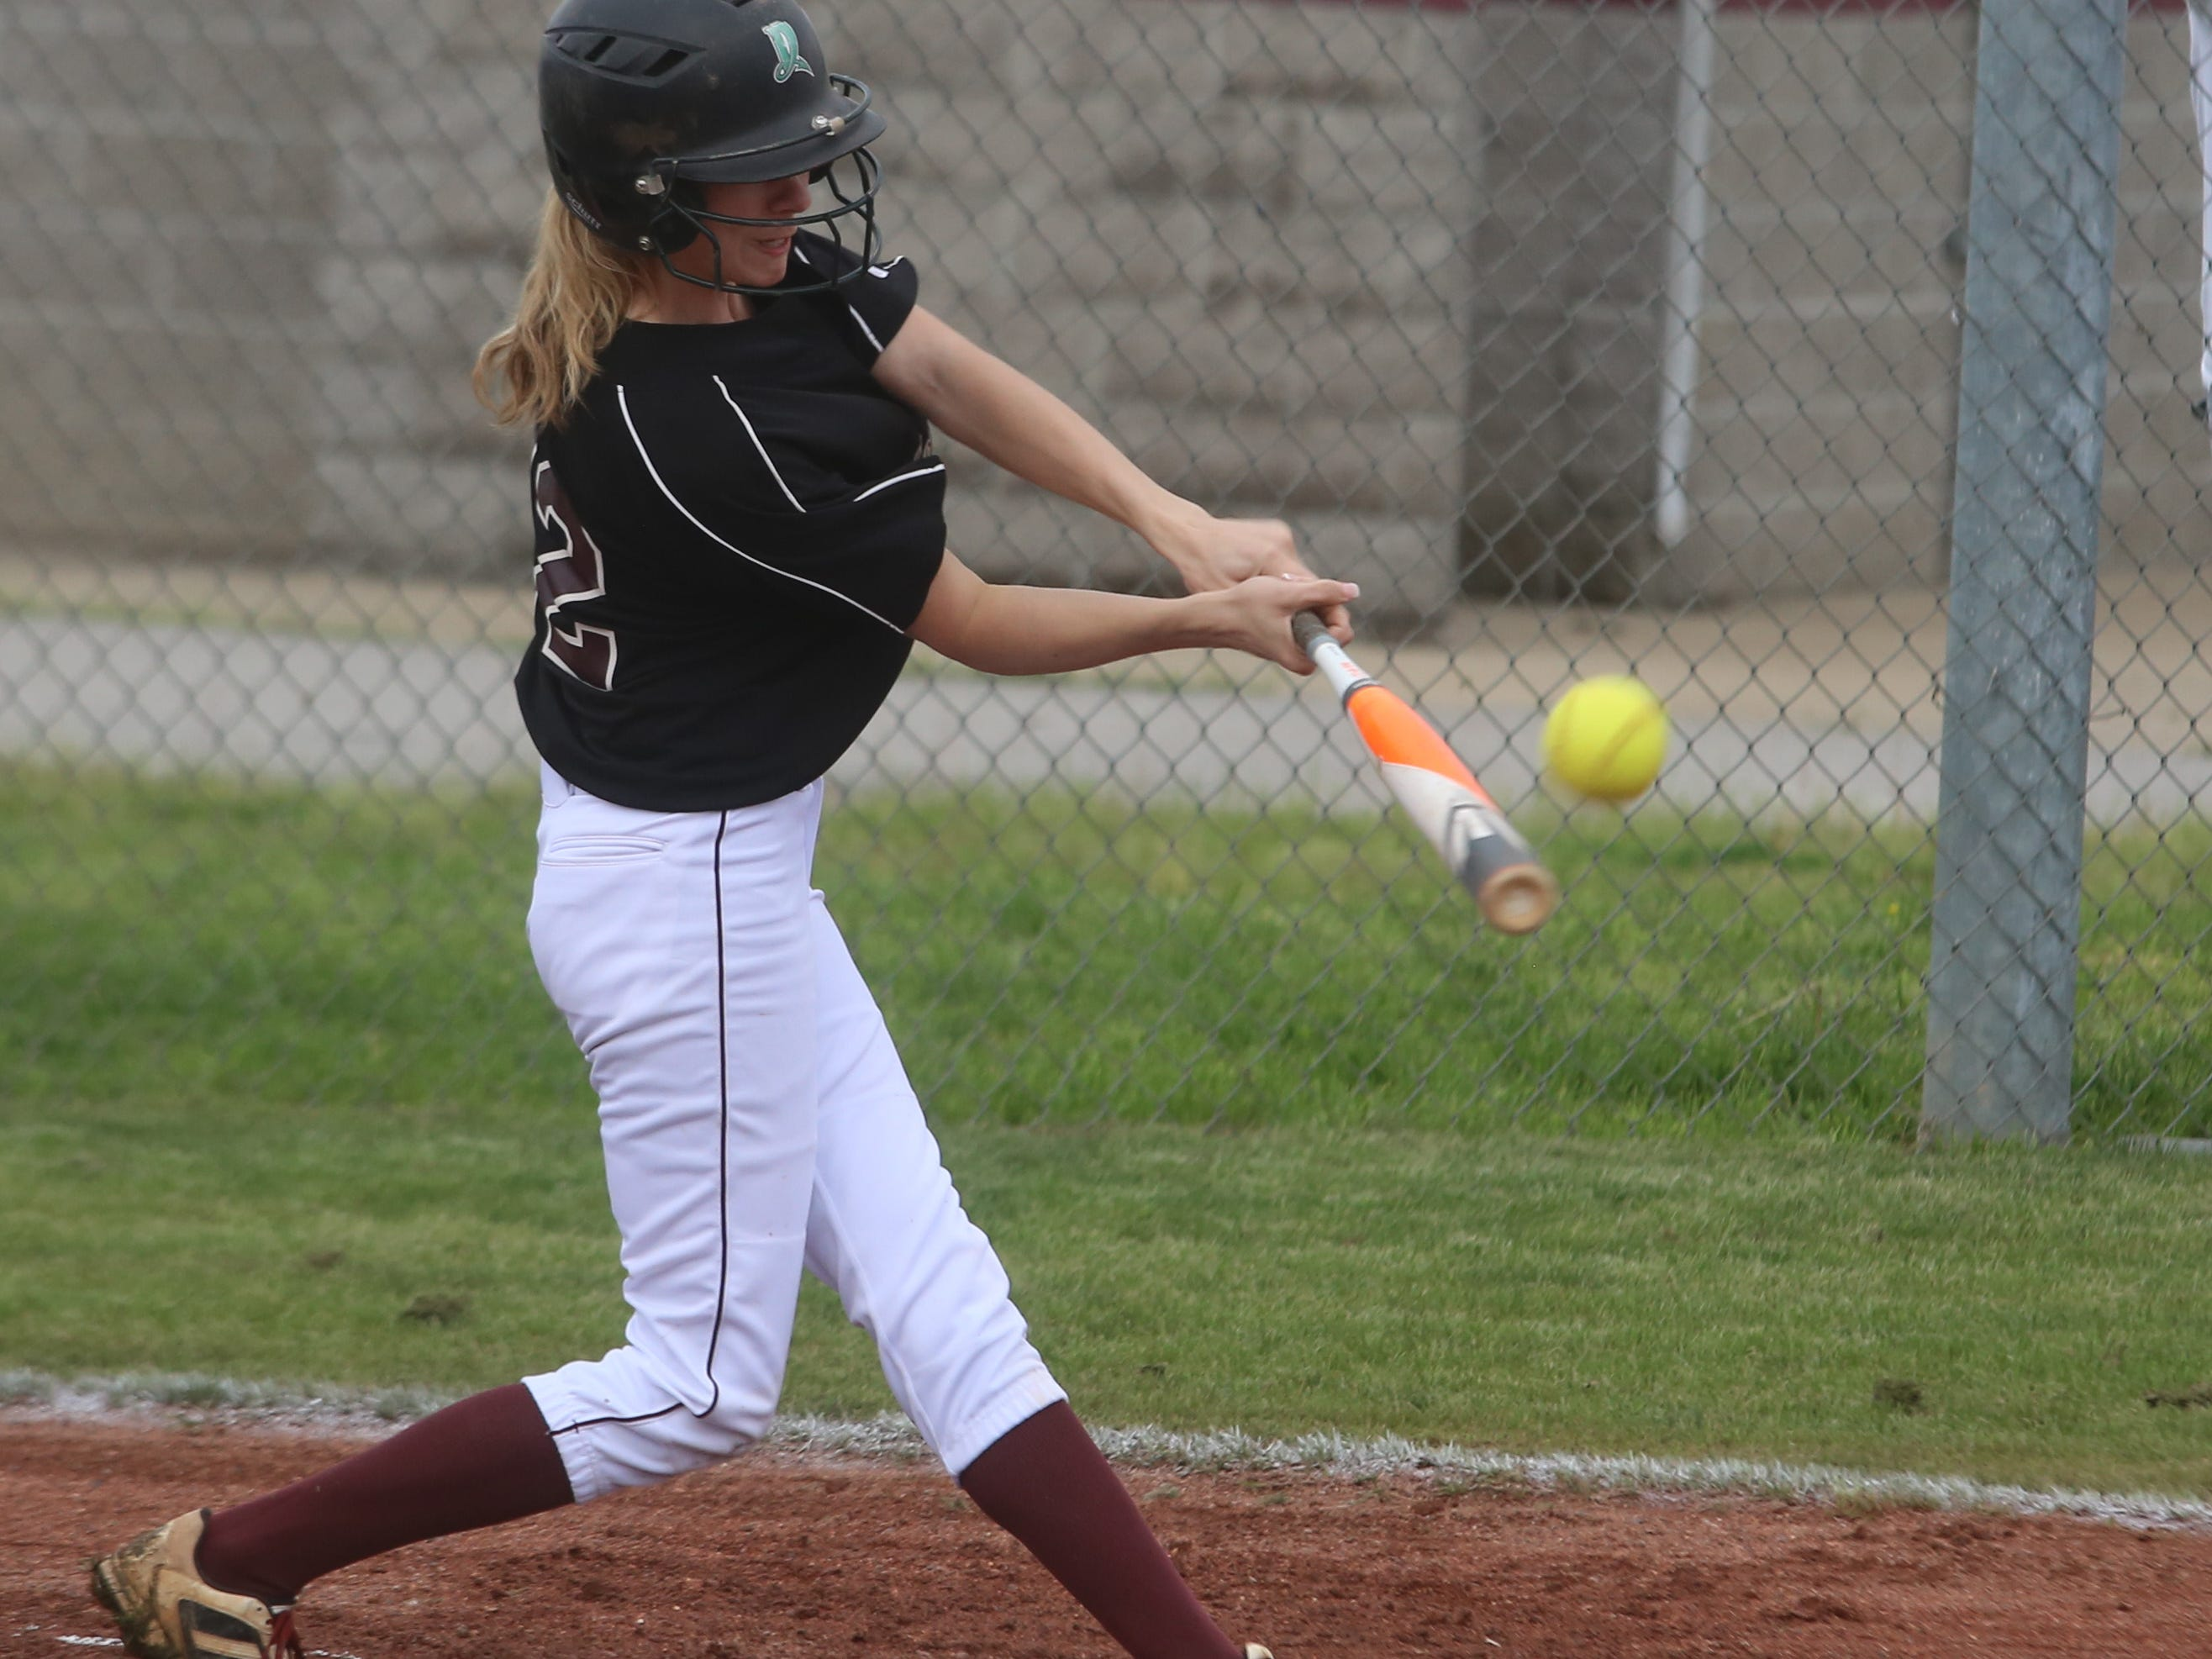 Eagleville leadoff hitter Kelsey Burks makes contact in the first inning of the Lady Eagles' 23-0 win over MTCS on Friday.